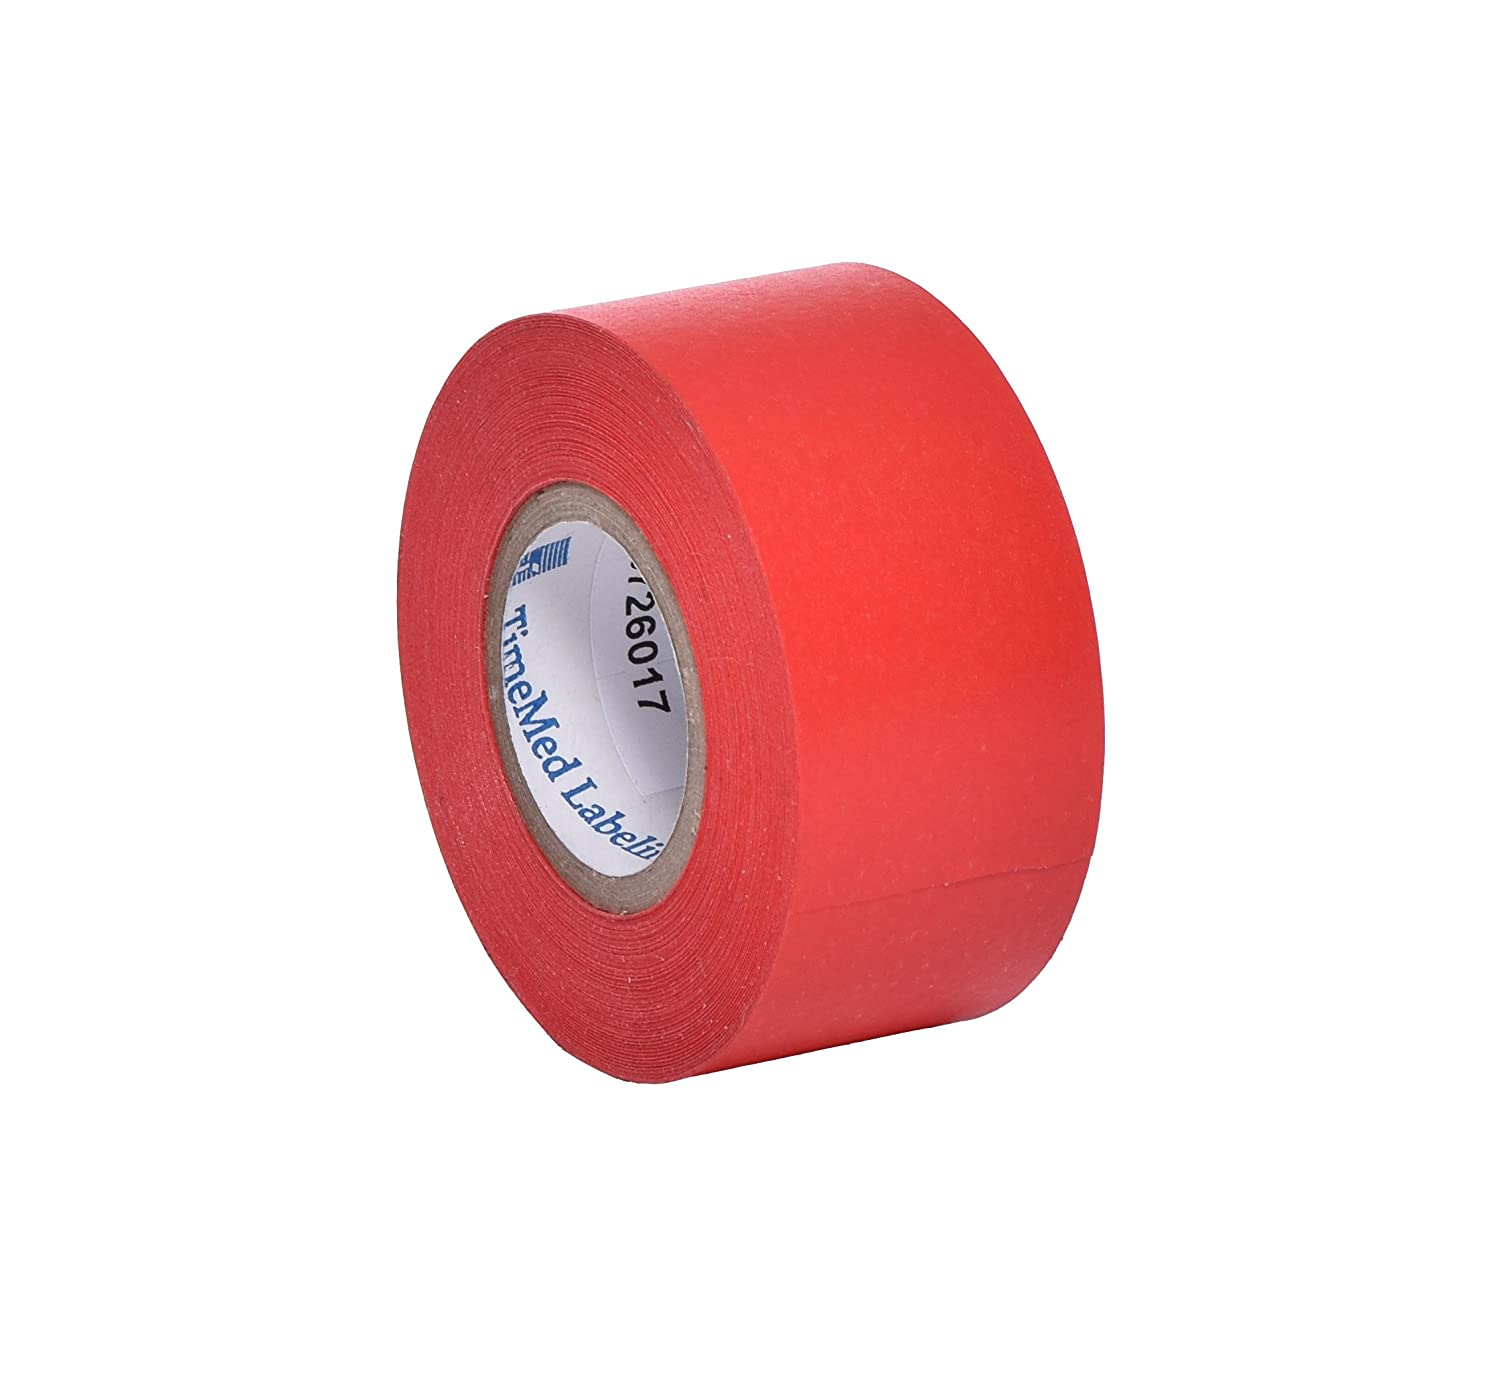 Camlab 1176867 Labelling Tape, 1' Wide, 500' (12.7 m) Long, Green 1 Wide 500 (12.7 m) Long